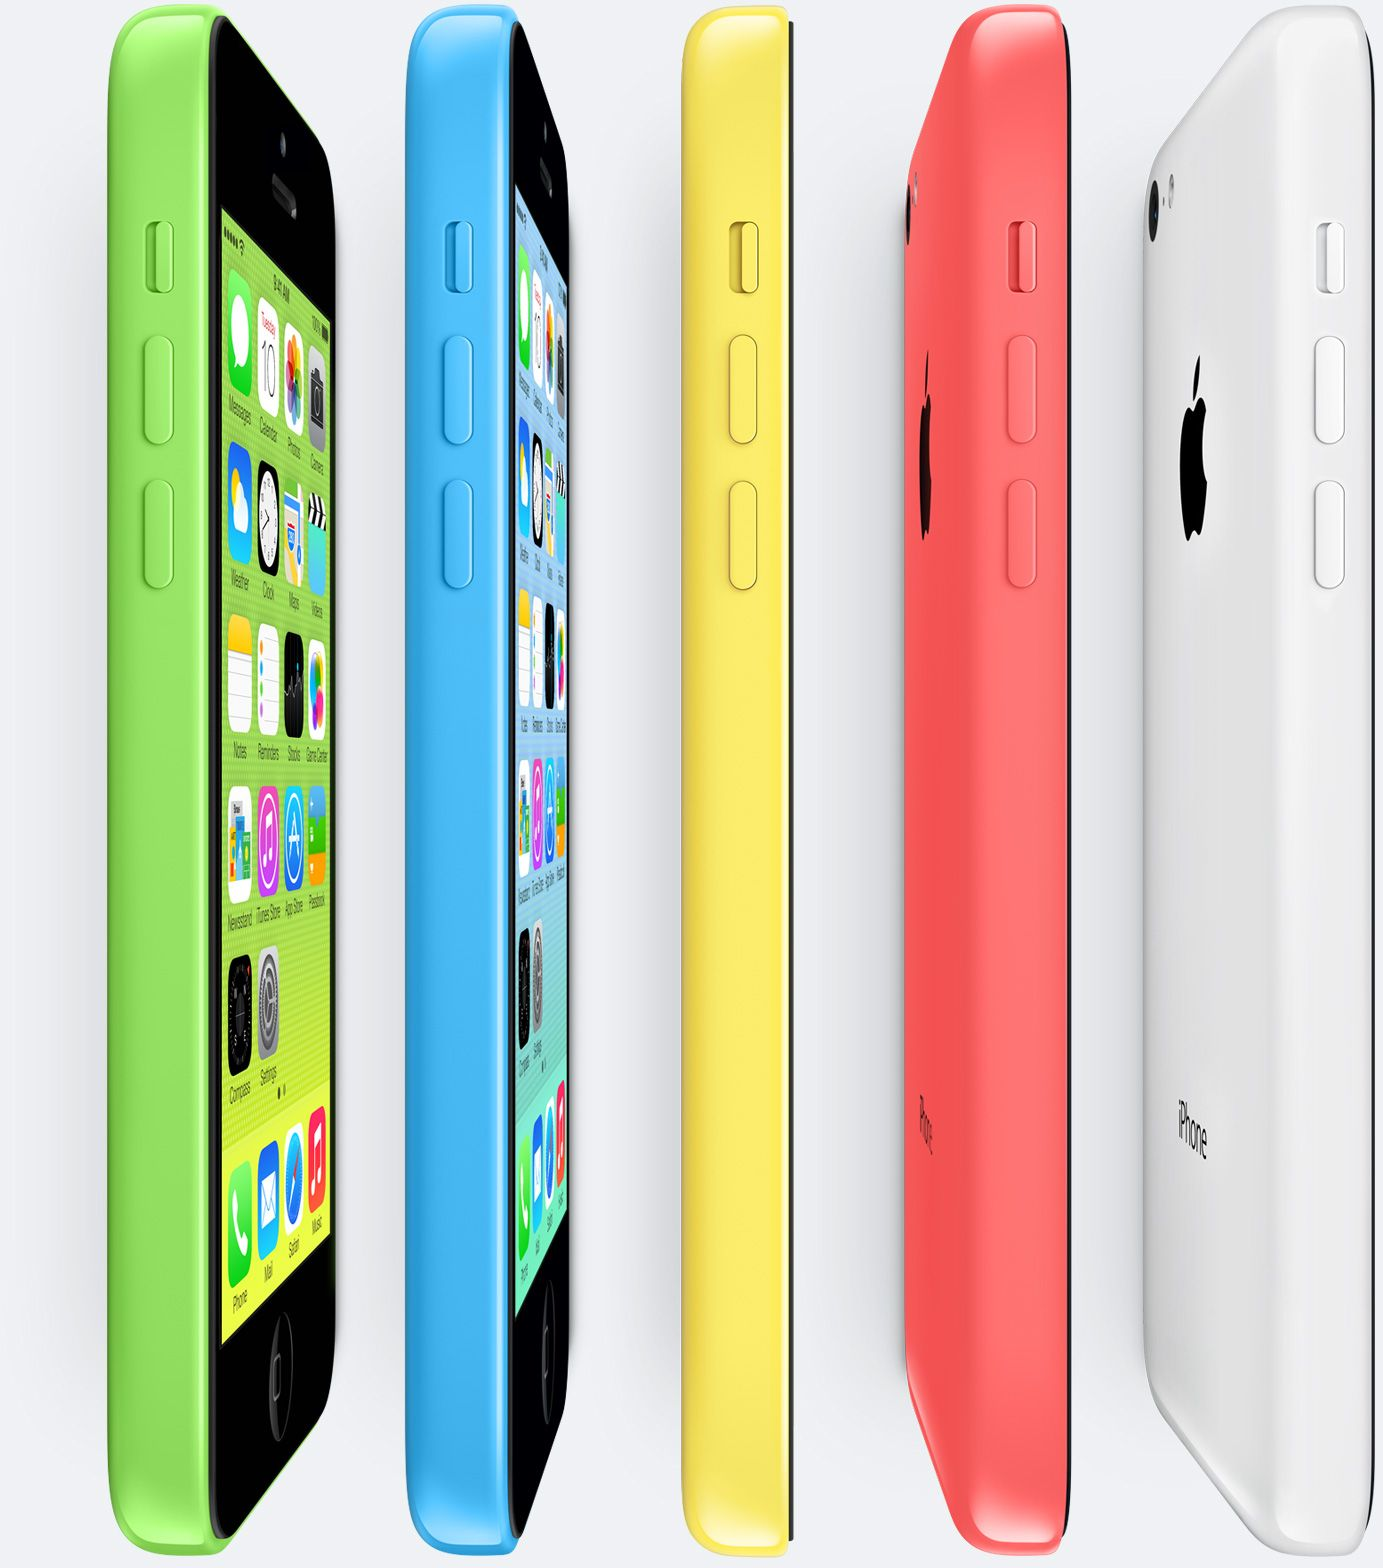 iPhone COLOR 5c